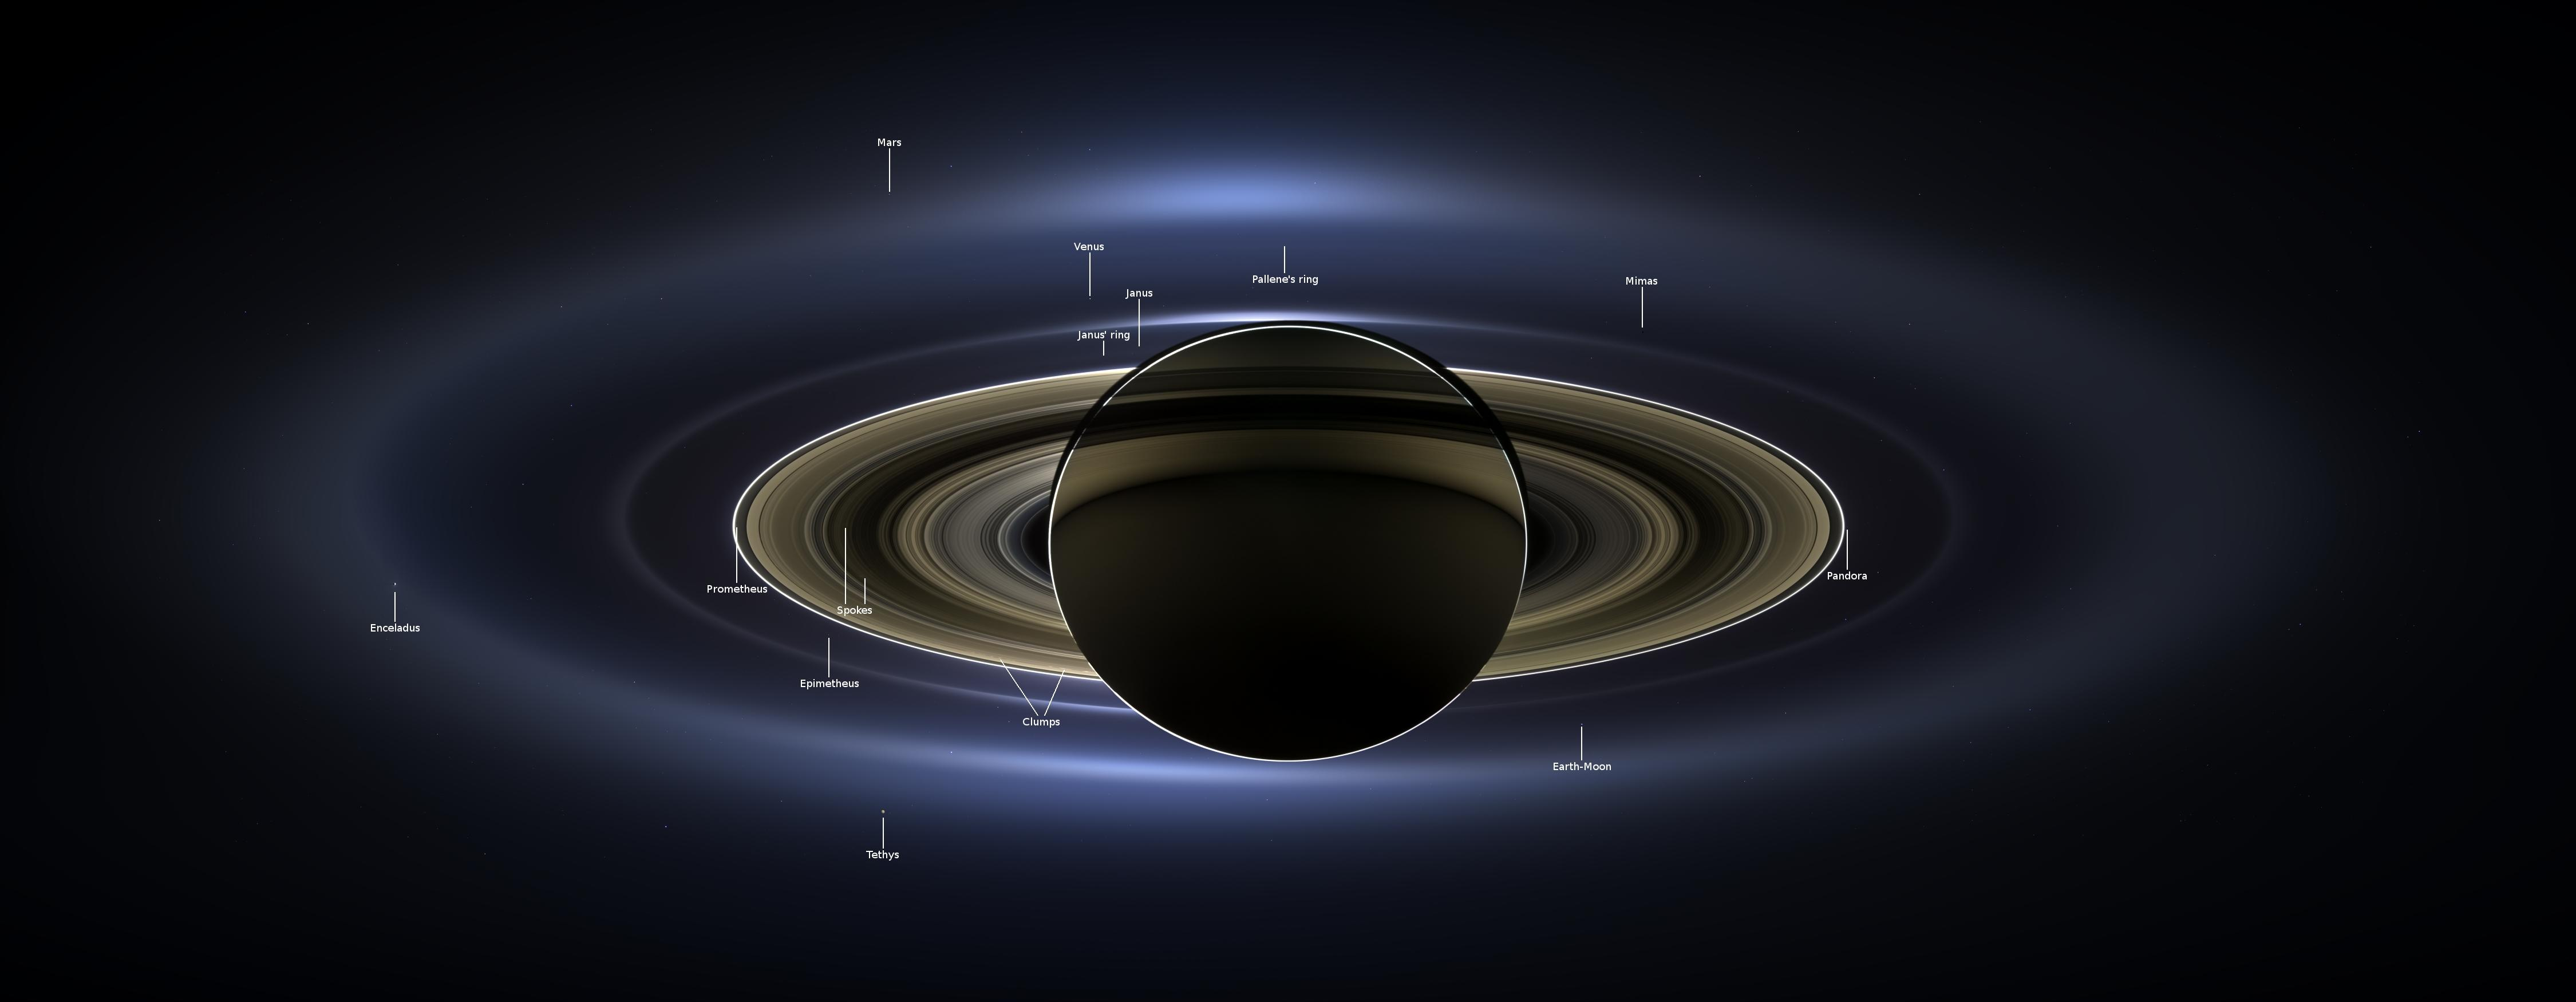 Saturn is seen as a black circle in the center with the rings backlit by the sun. A ring of blue haze reflects sunlight from the inner rings of Saturn. Small dots in the image are seven of Saturn's moons, Mars, Venus, and our own Earth.